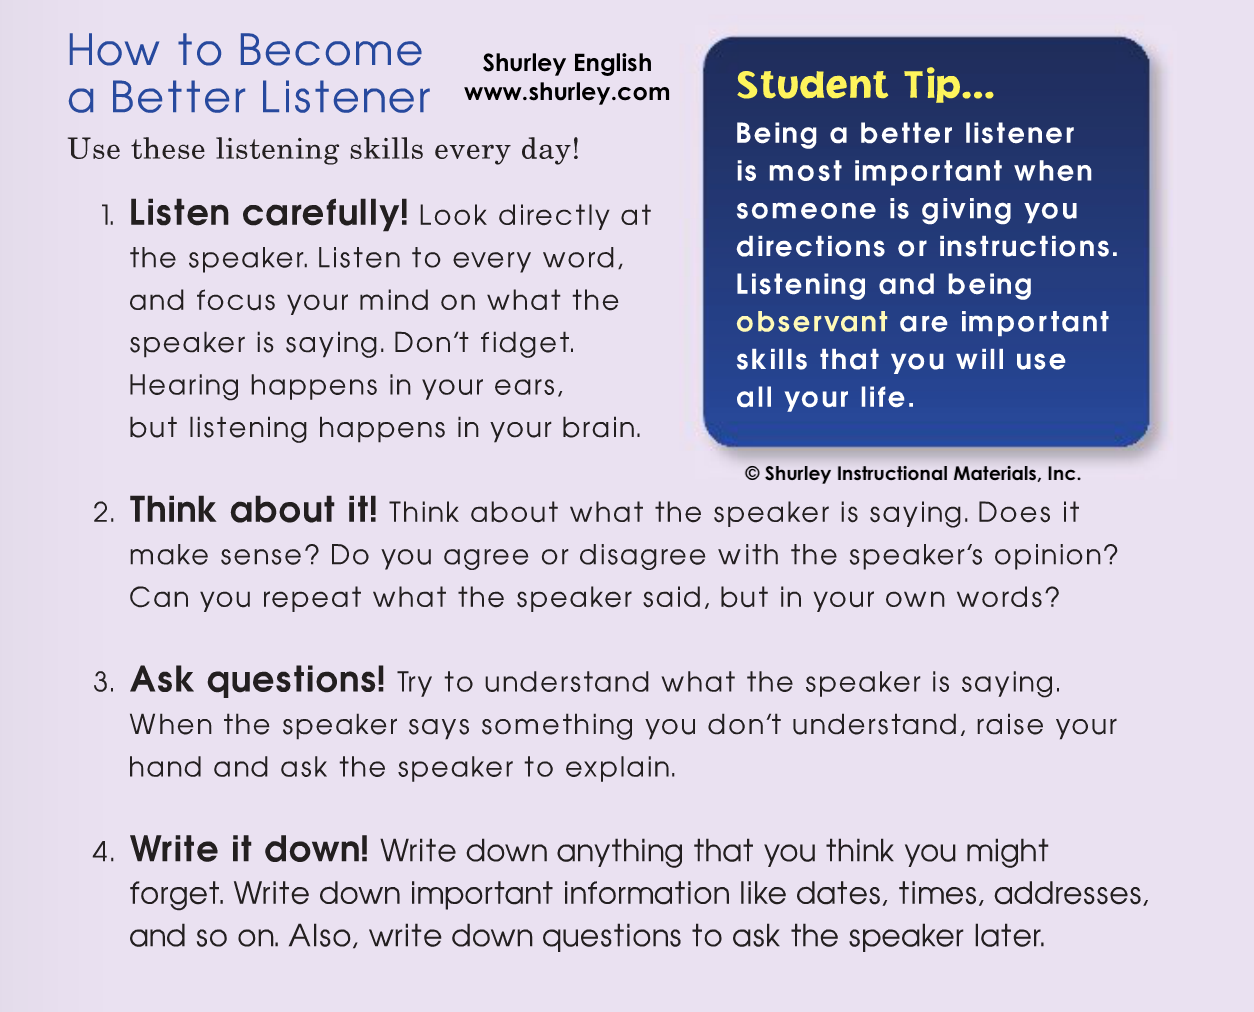 How to Become a Better Listener with Shurley English.png